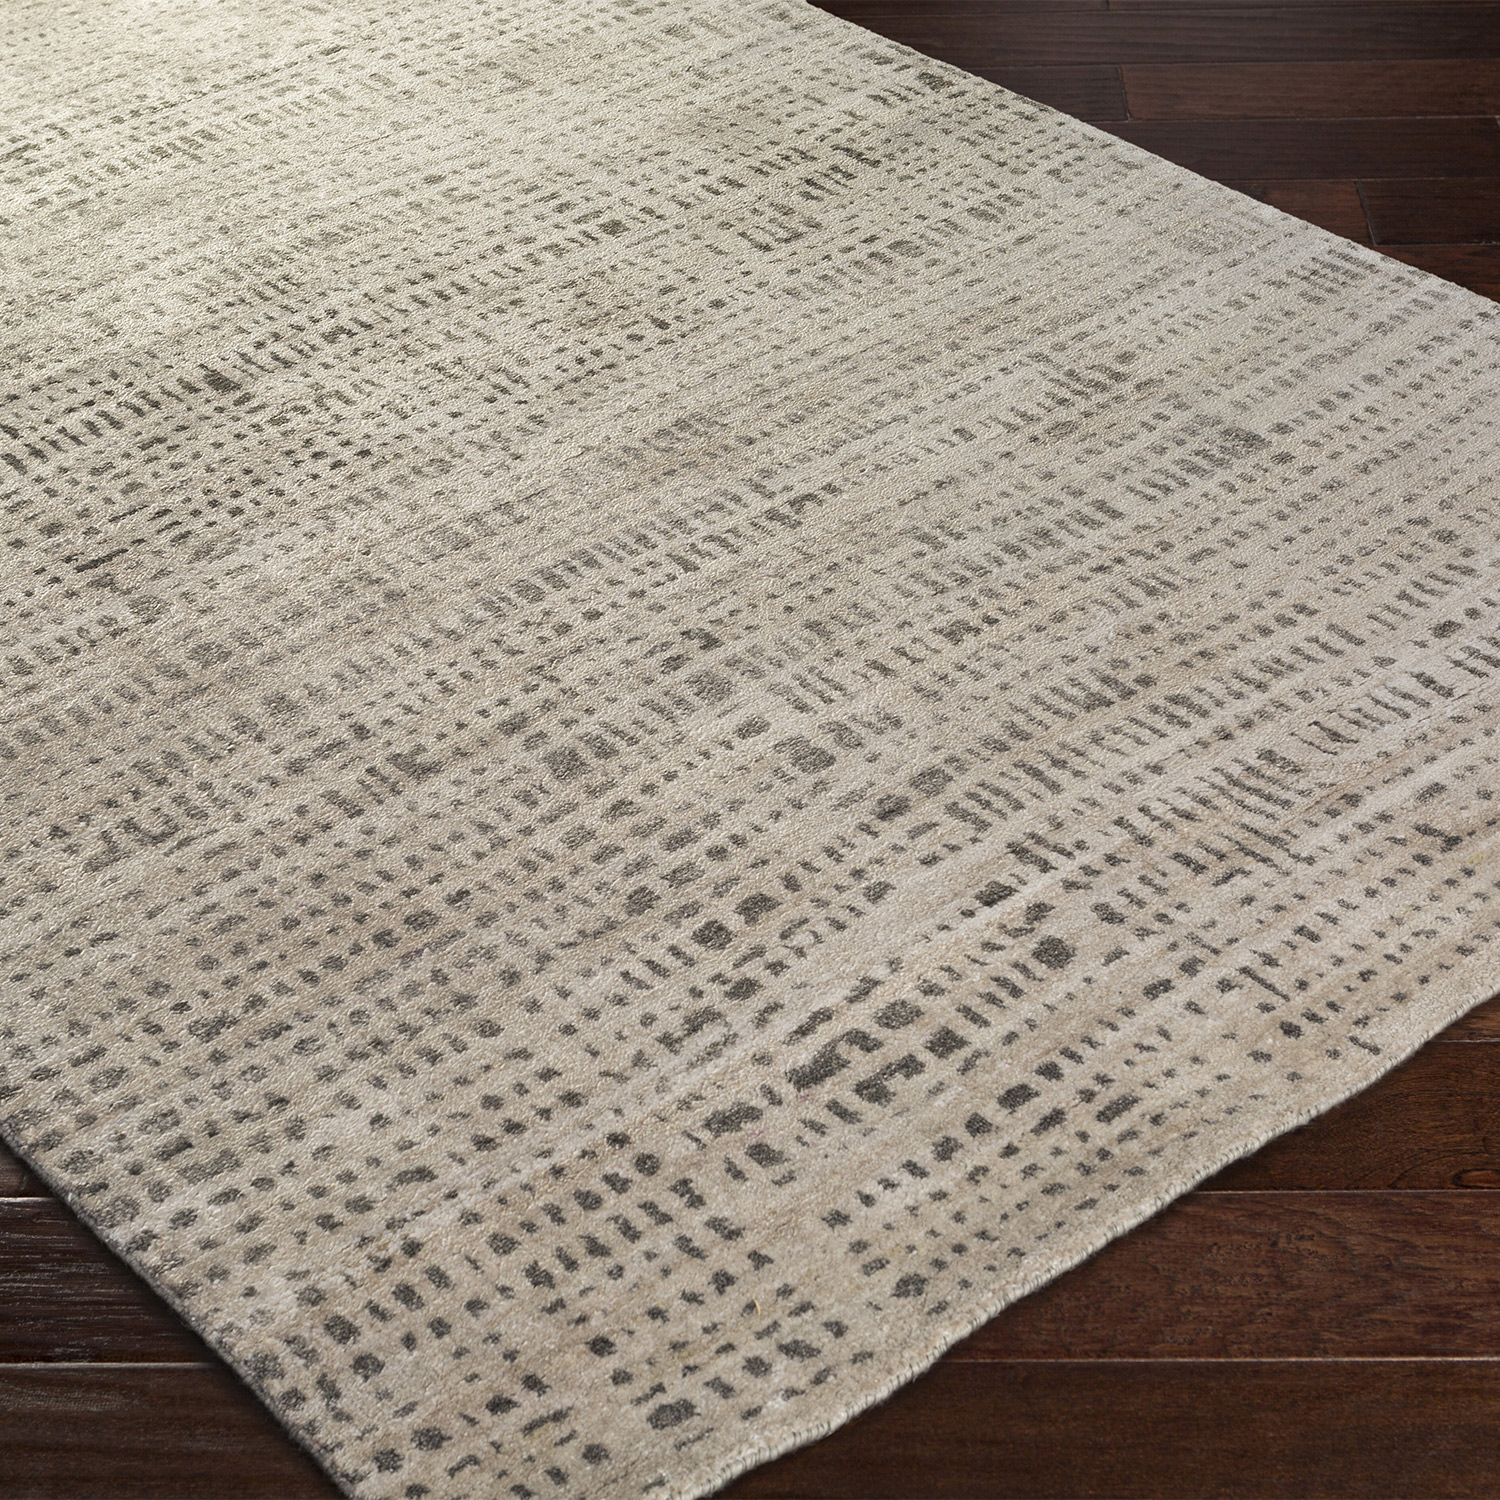 The Surya Ludlow Crosshatch Rug Infuses Contemporary Spaces With Intriguing Design And A Compelling Pattern Artistically Ins Crosshatch Rugs Hand Knotted Rugs